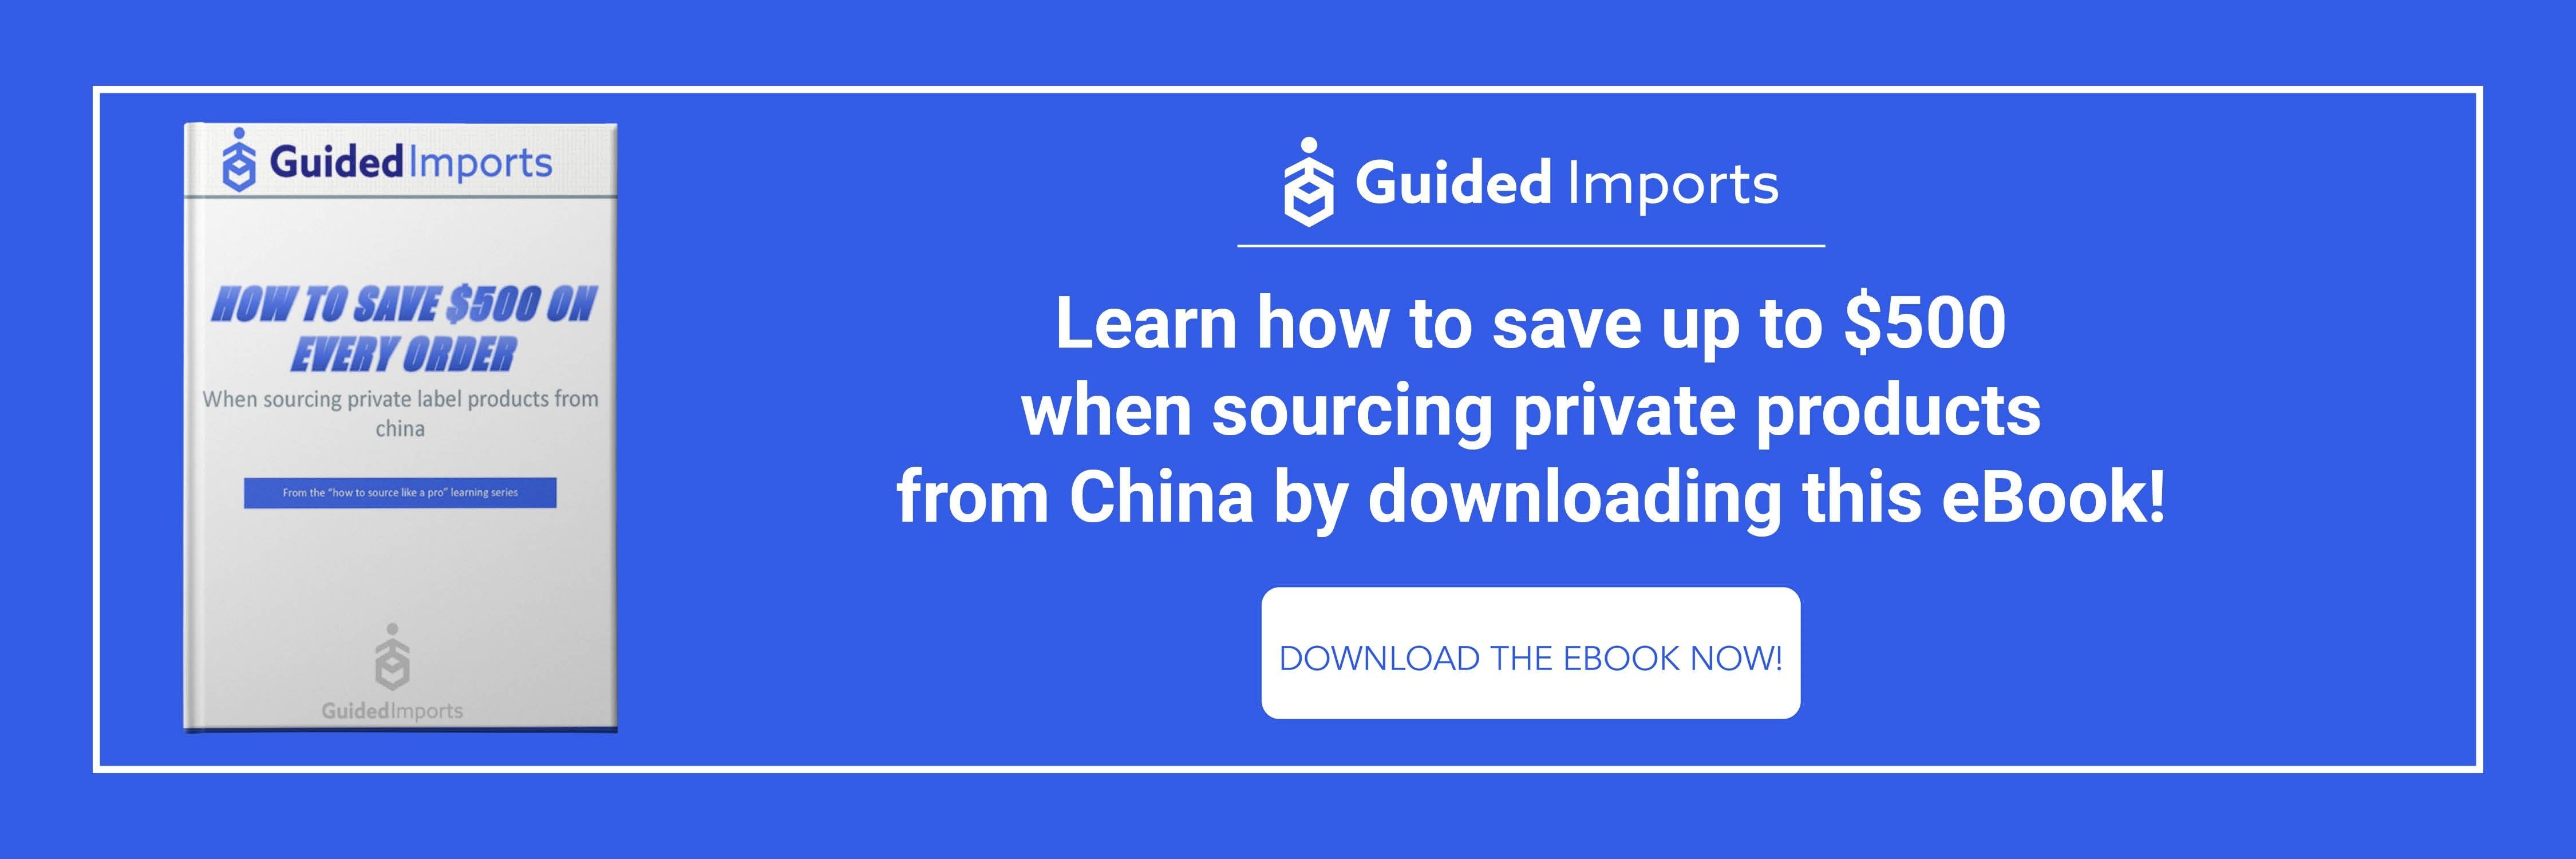 How to Save $500 on Every Order When Sourcing Private Label Products From China